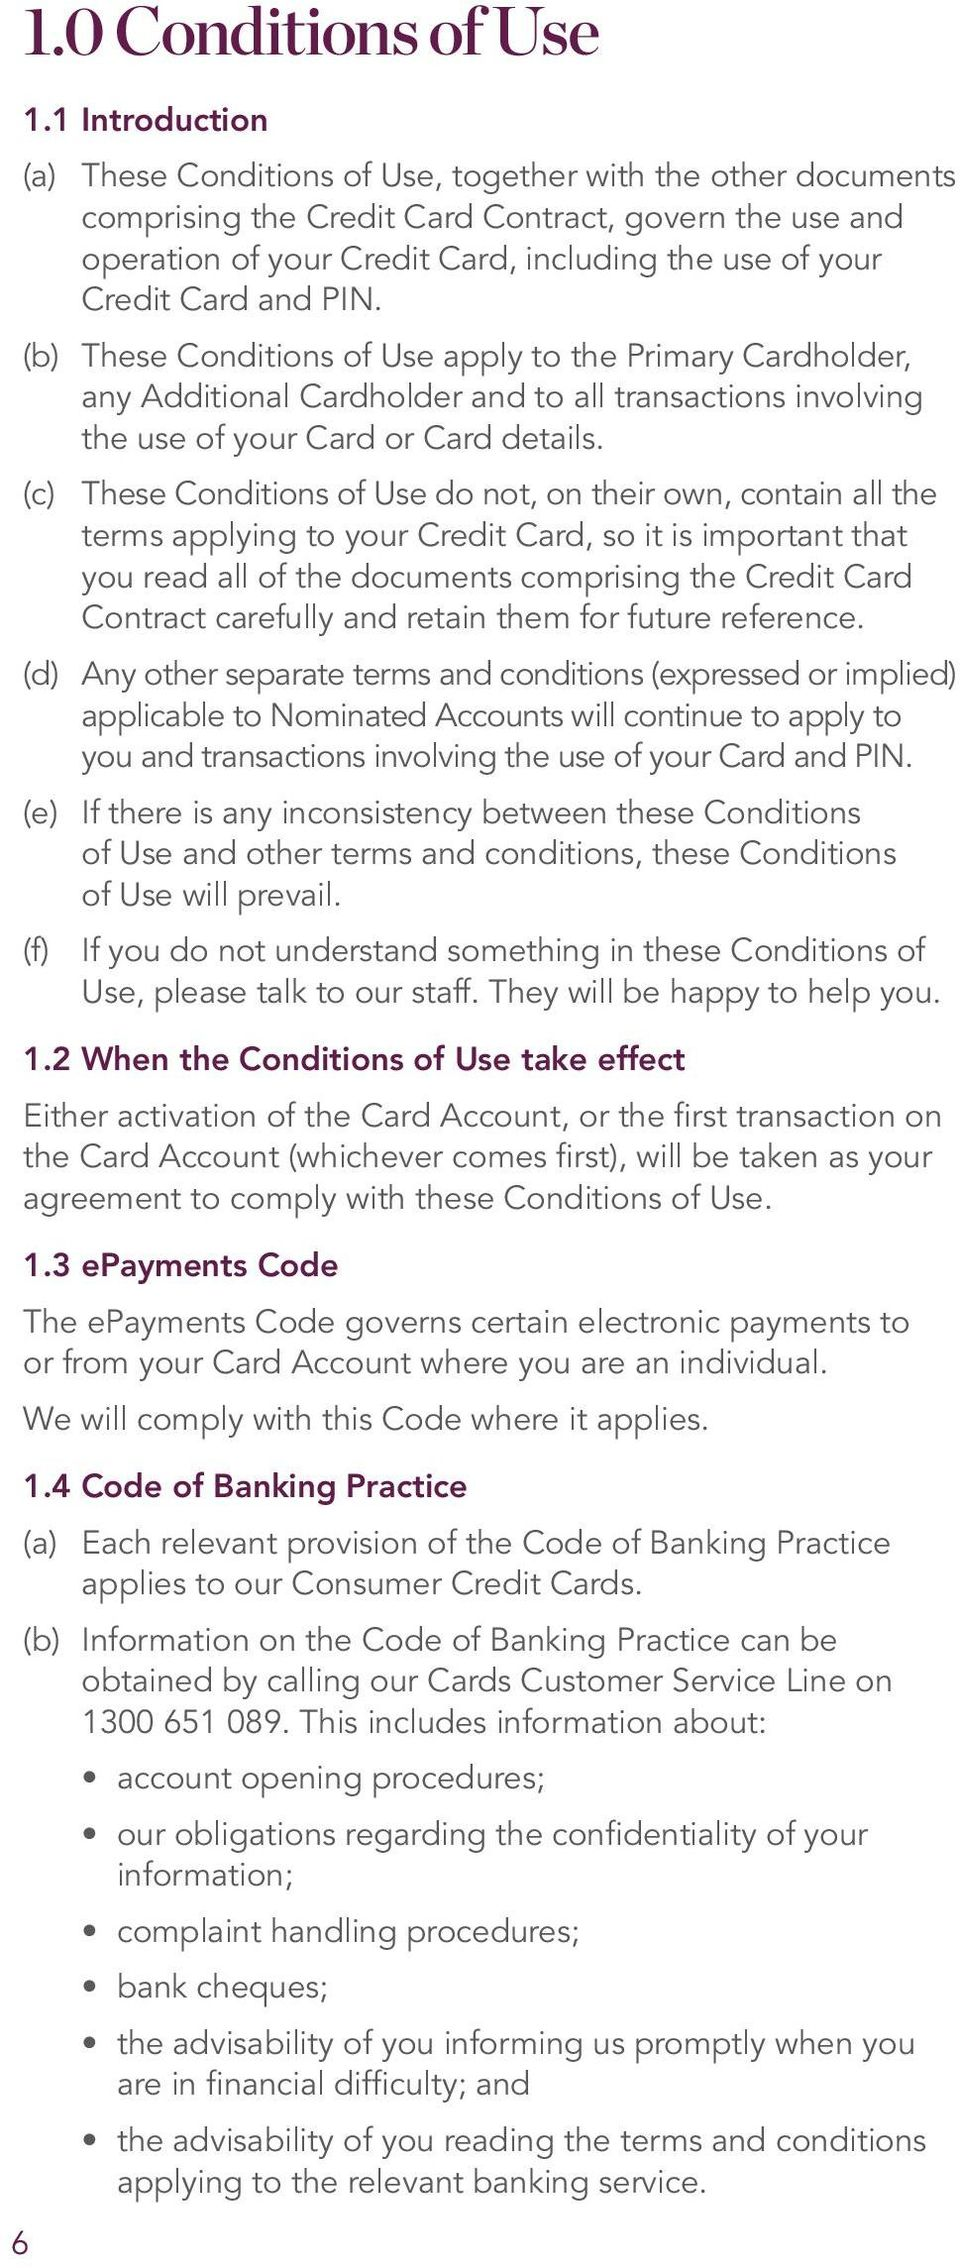 Card and PIN. (b) These Conditions of Use apply to the Primary Cardholder, any Additional Cardholder and to all transactions involving the use of your Card or Card details.